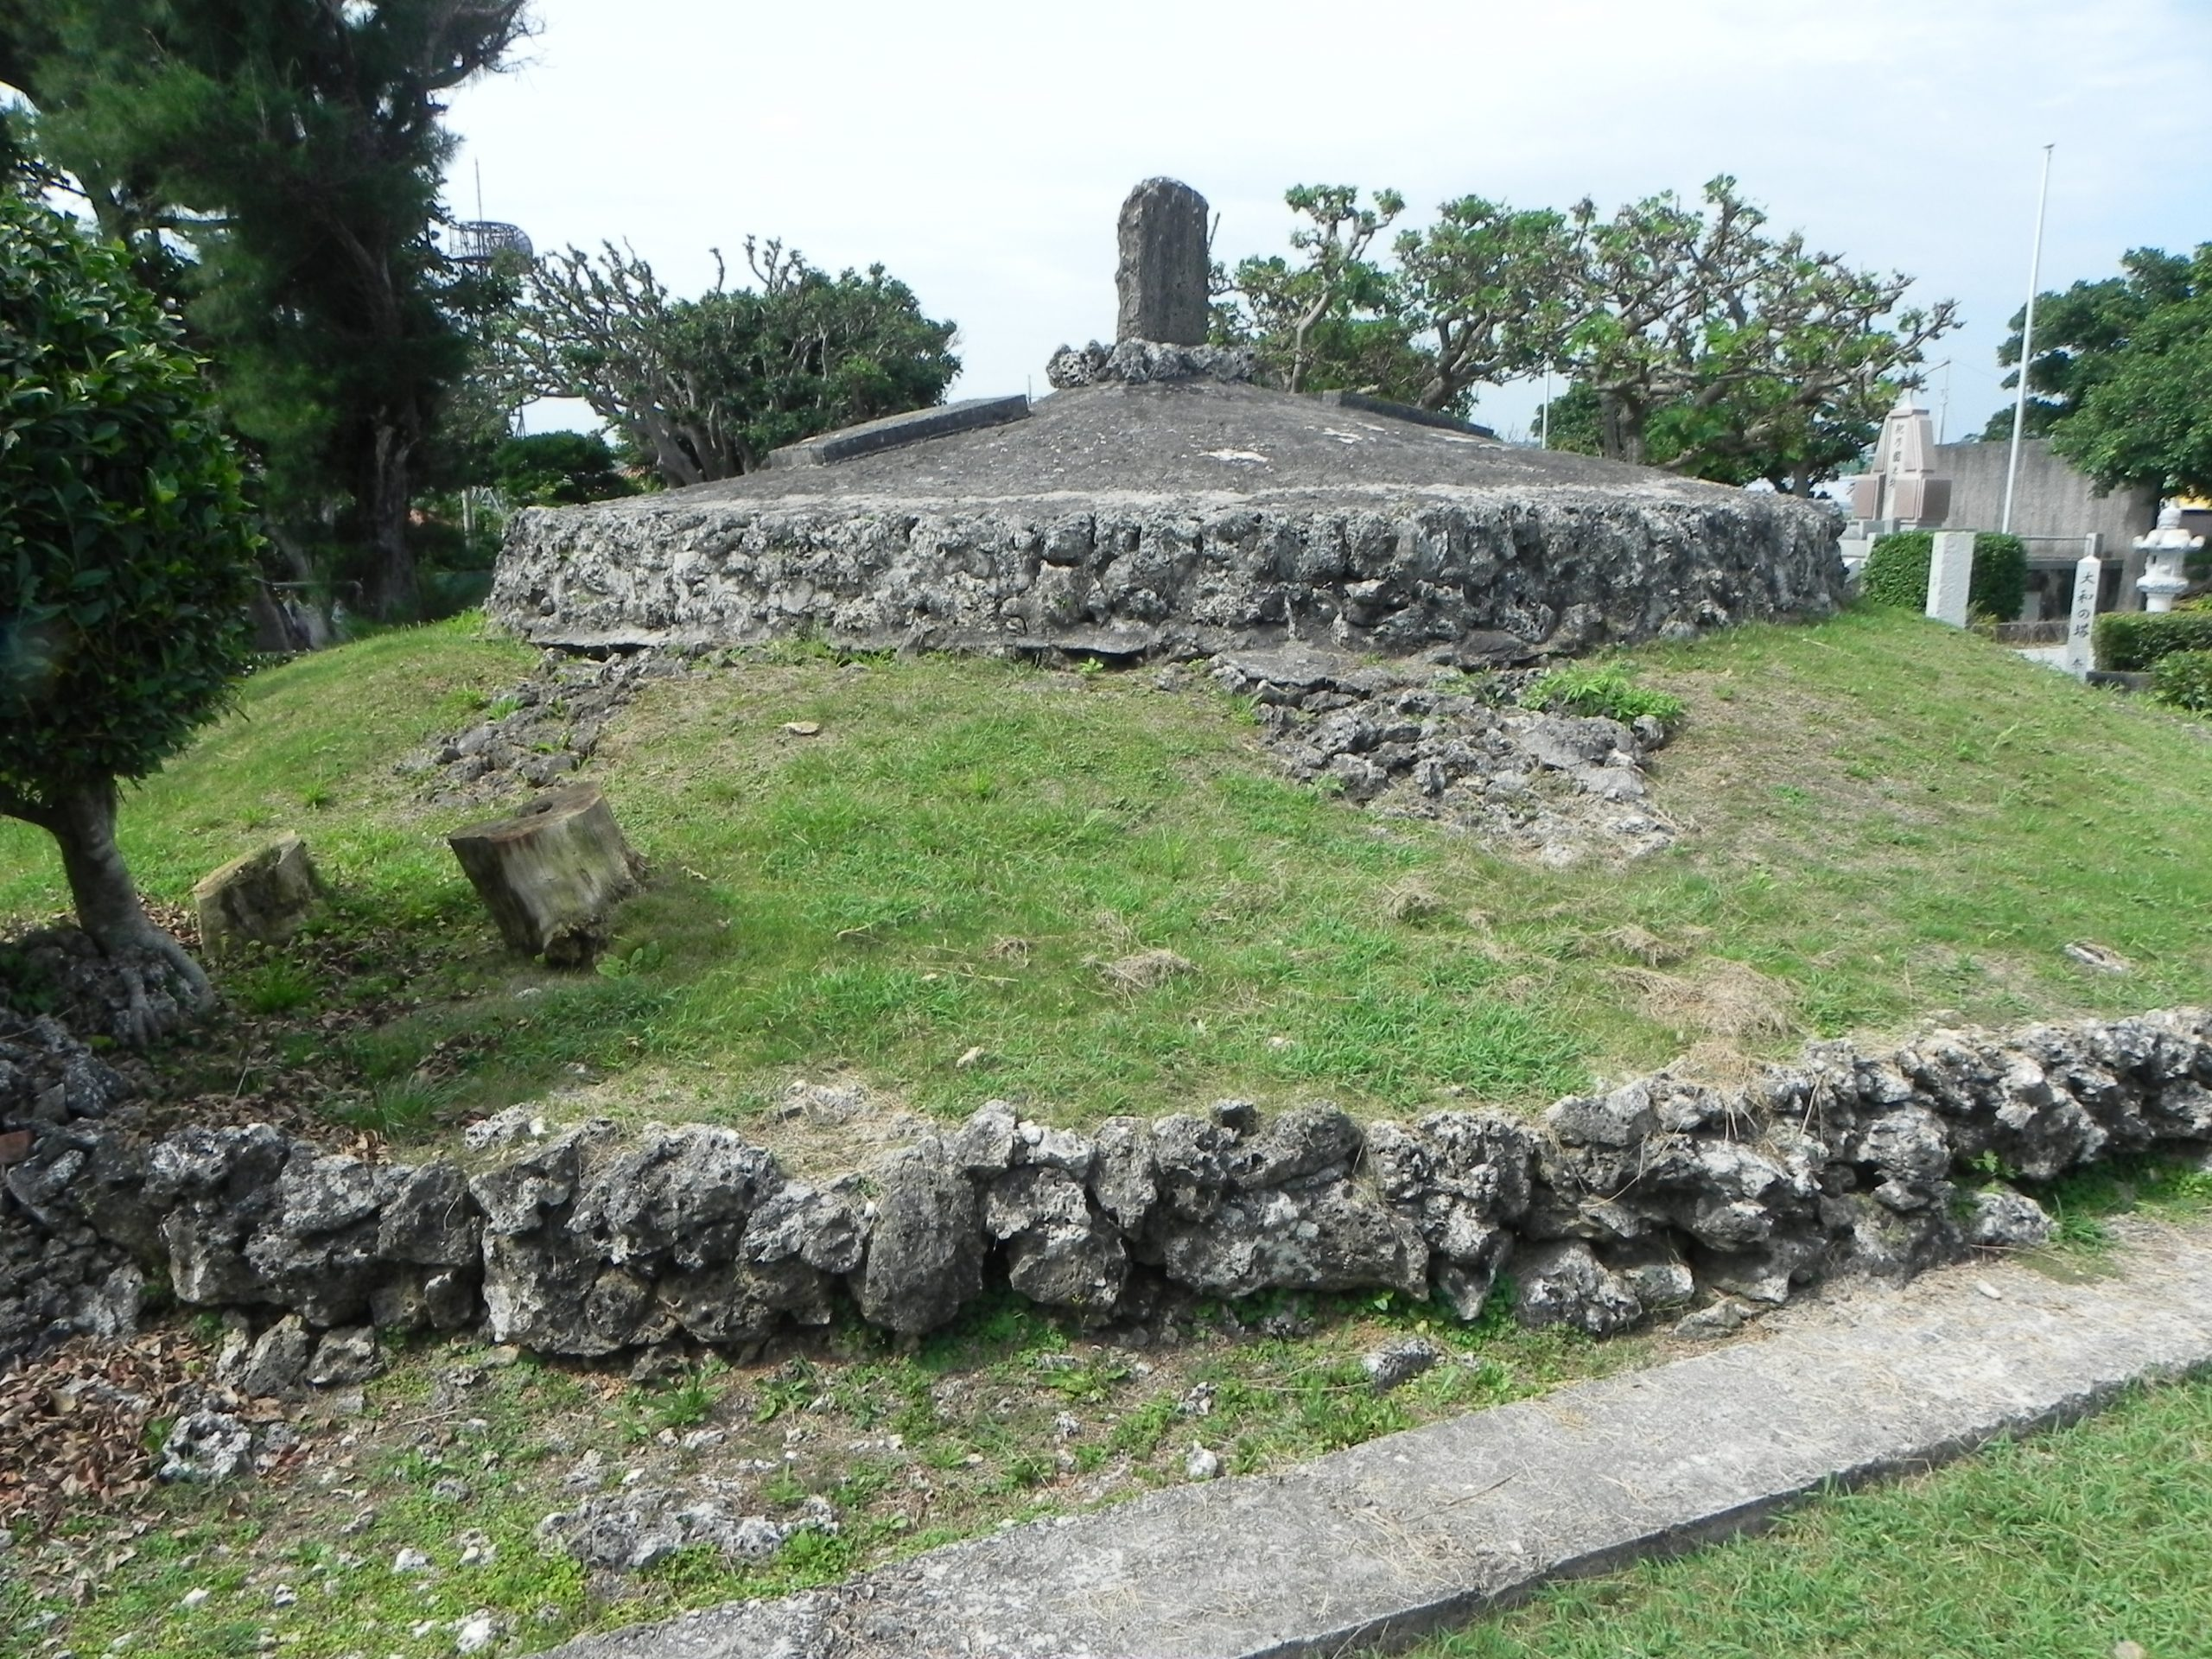 4 An Ossuary Full of Remains